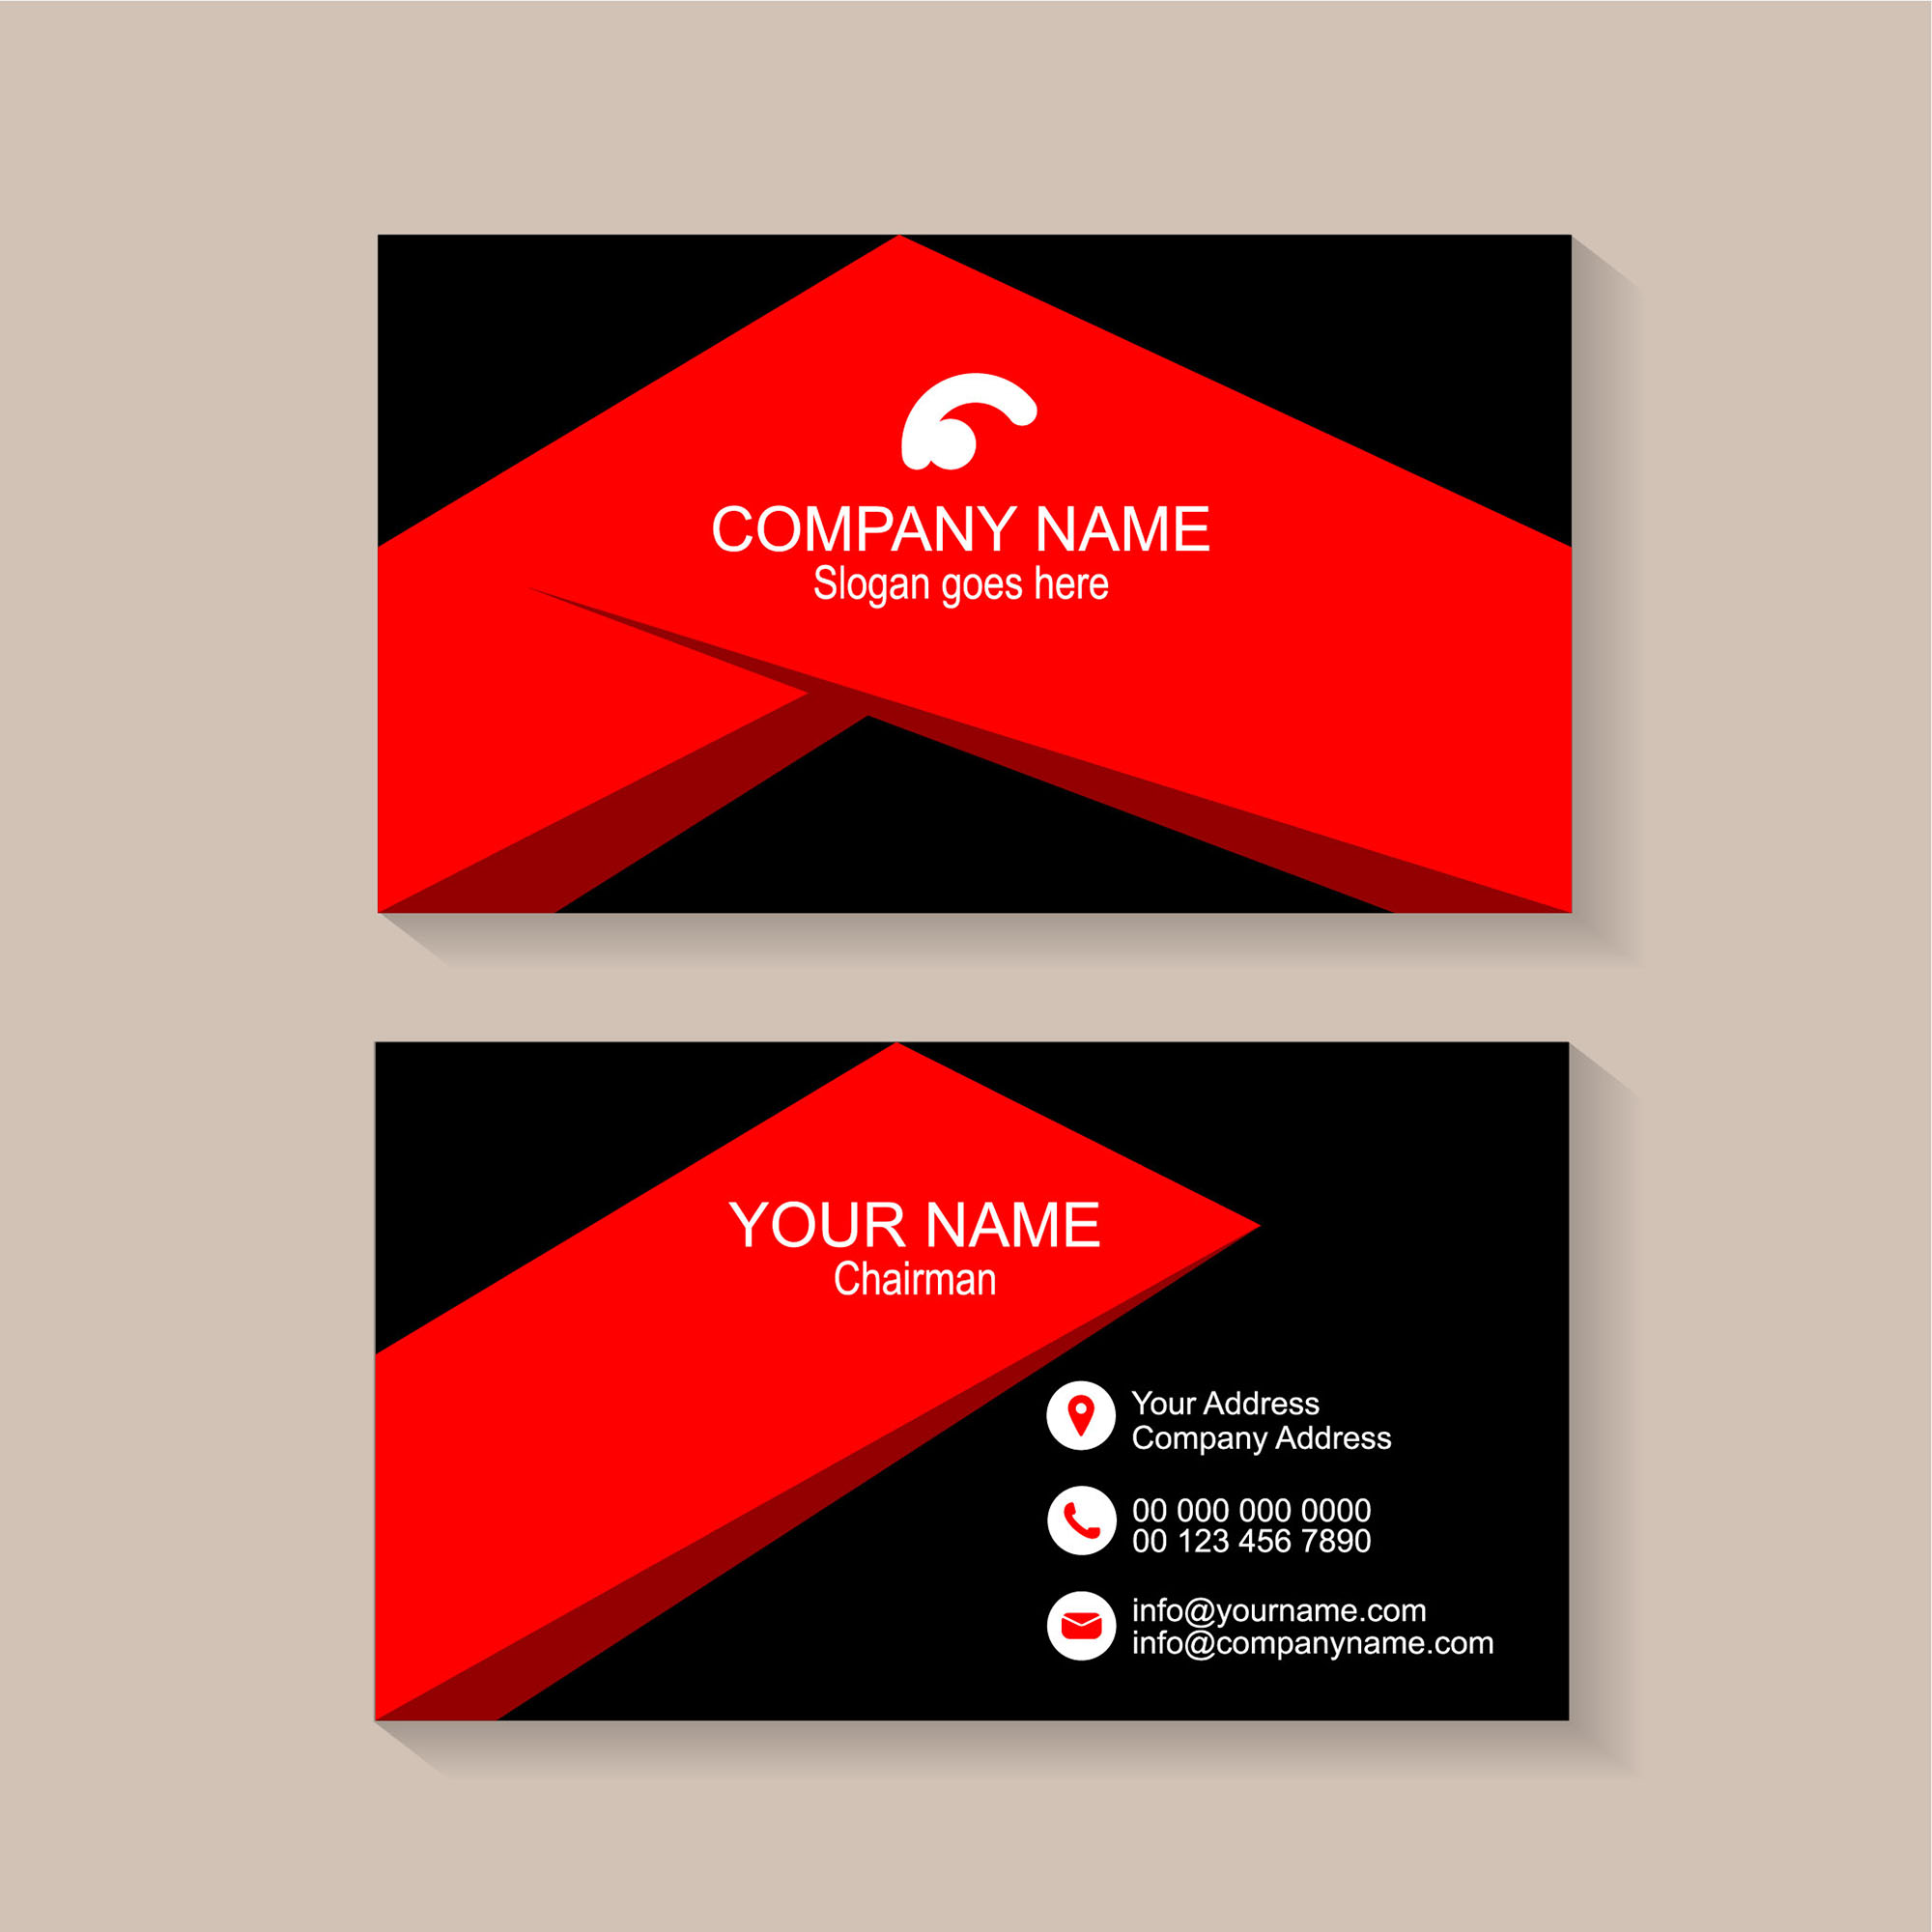 Business card template design free download wisxi business card business cards business card design business card template design templates wajeb Choice Image